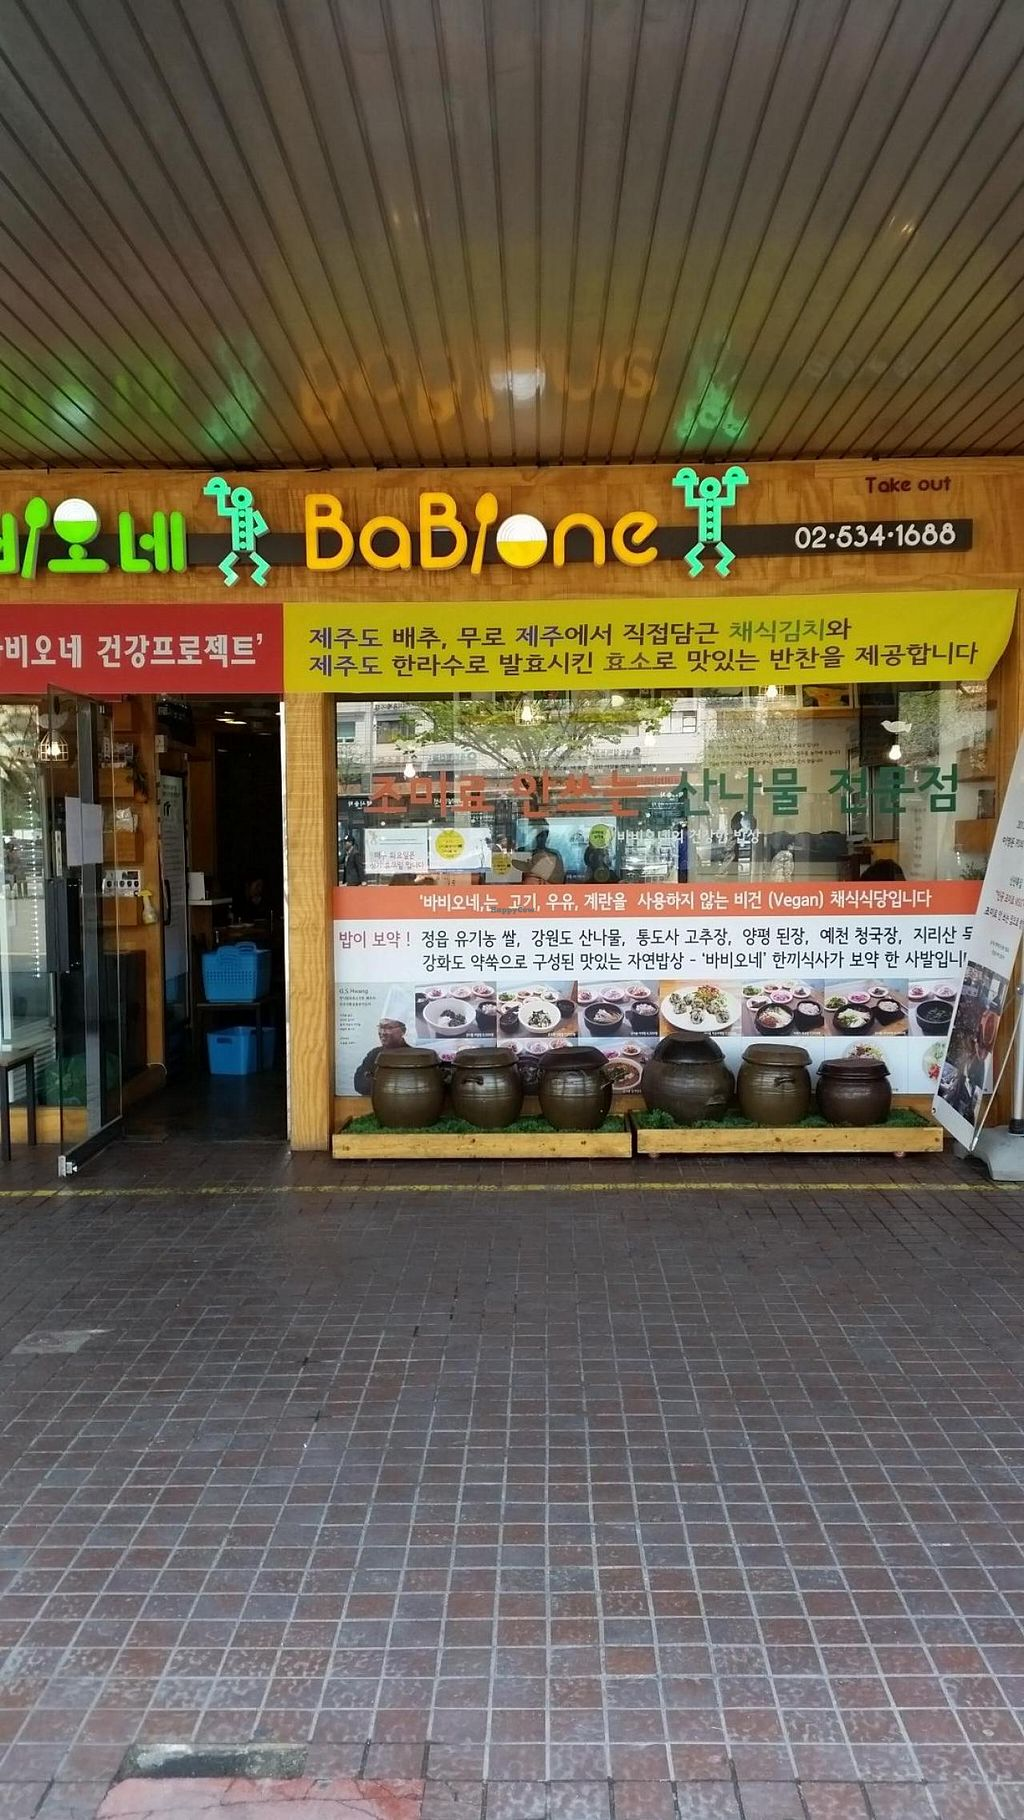 """Photo of CLOSED: Babione - 바비오네  by <a href=""""/members/profile/jotacosta"""">jotacosta</a> <br/>front <br/> April 14, 2015  - <a href='/contact/abuse/image/50225/99105'>Report</a>"""